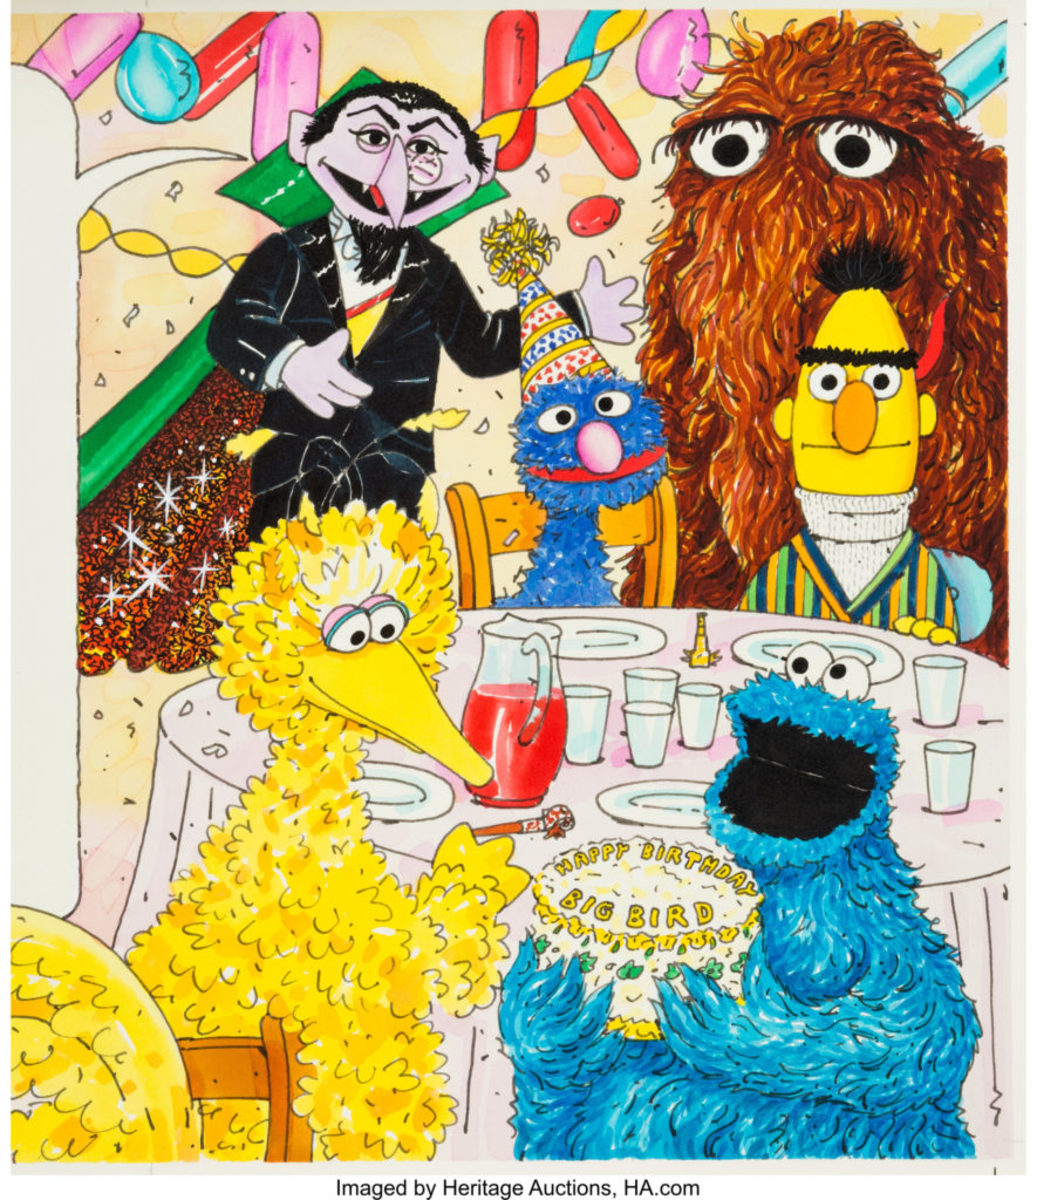 This is an original illustration by Rick Brown that was used on a cover of Sesame Street Magazine, which premiered in October 1970. On this cover from the 1970s/'80s, some Muppets have gathered to celebrate Big Bird's birthday including Cookie Monster, The Count, Bert, Grover, and a rare appearance of Mr. Snuffleupagus, $1,140. Image courtesy of Heritage Auctions